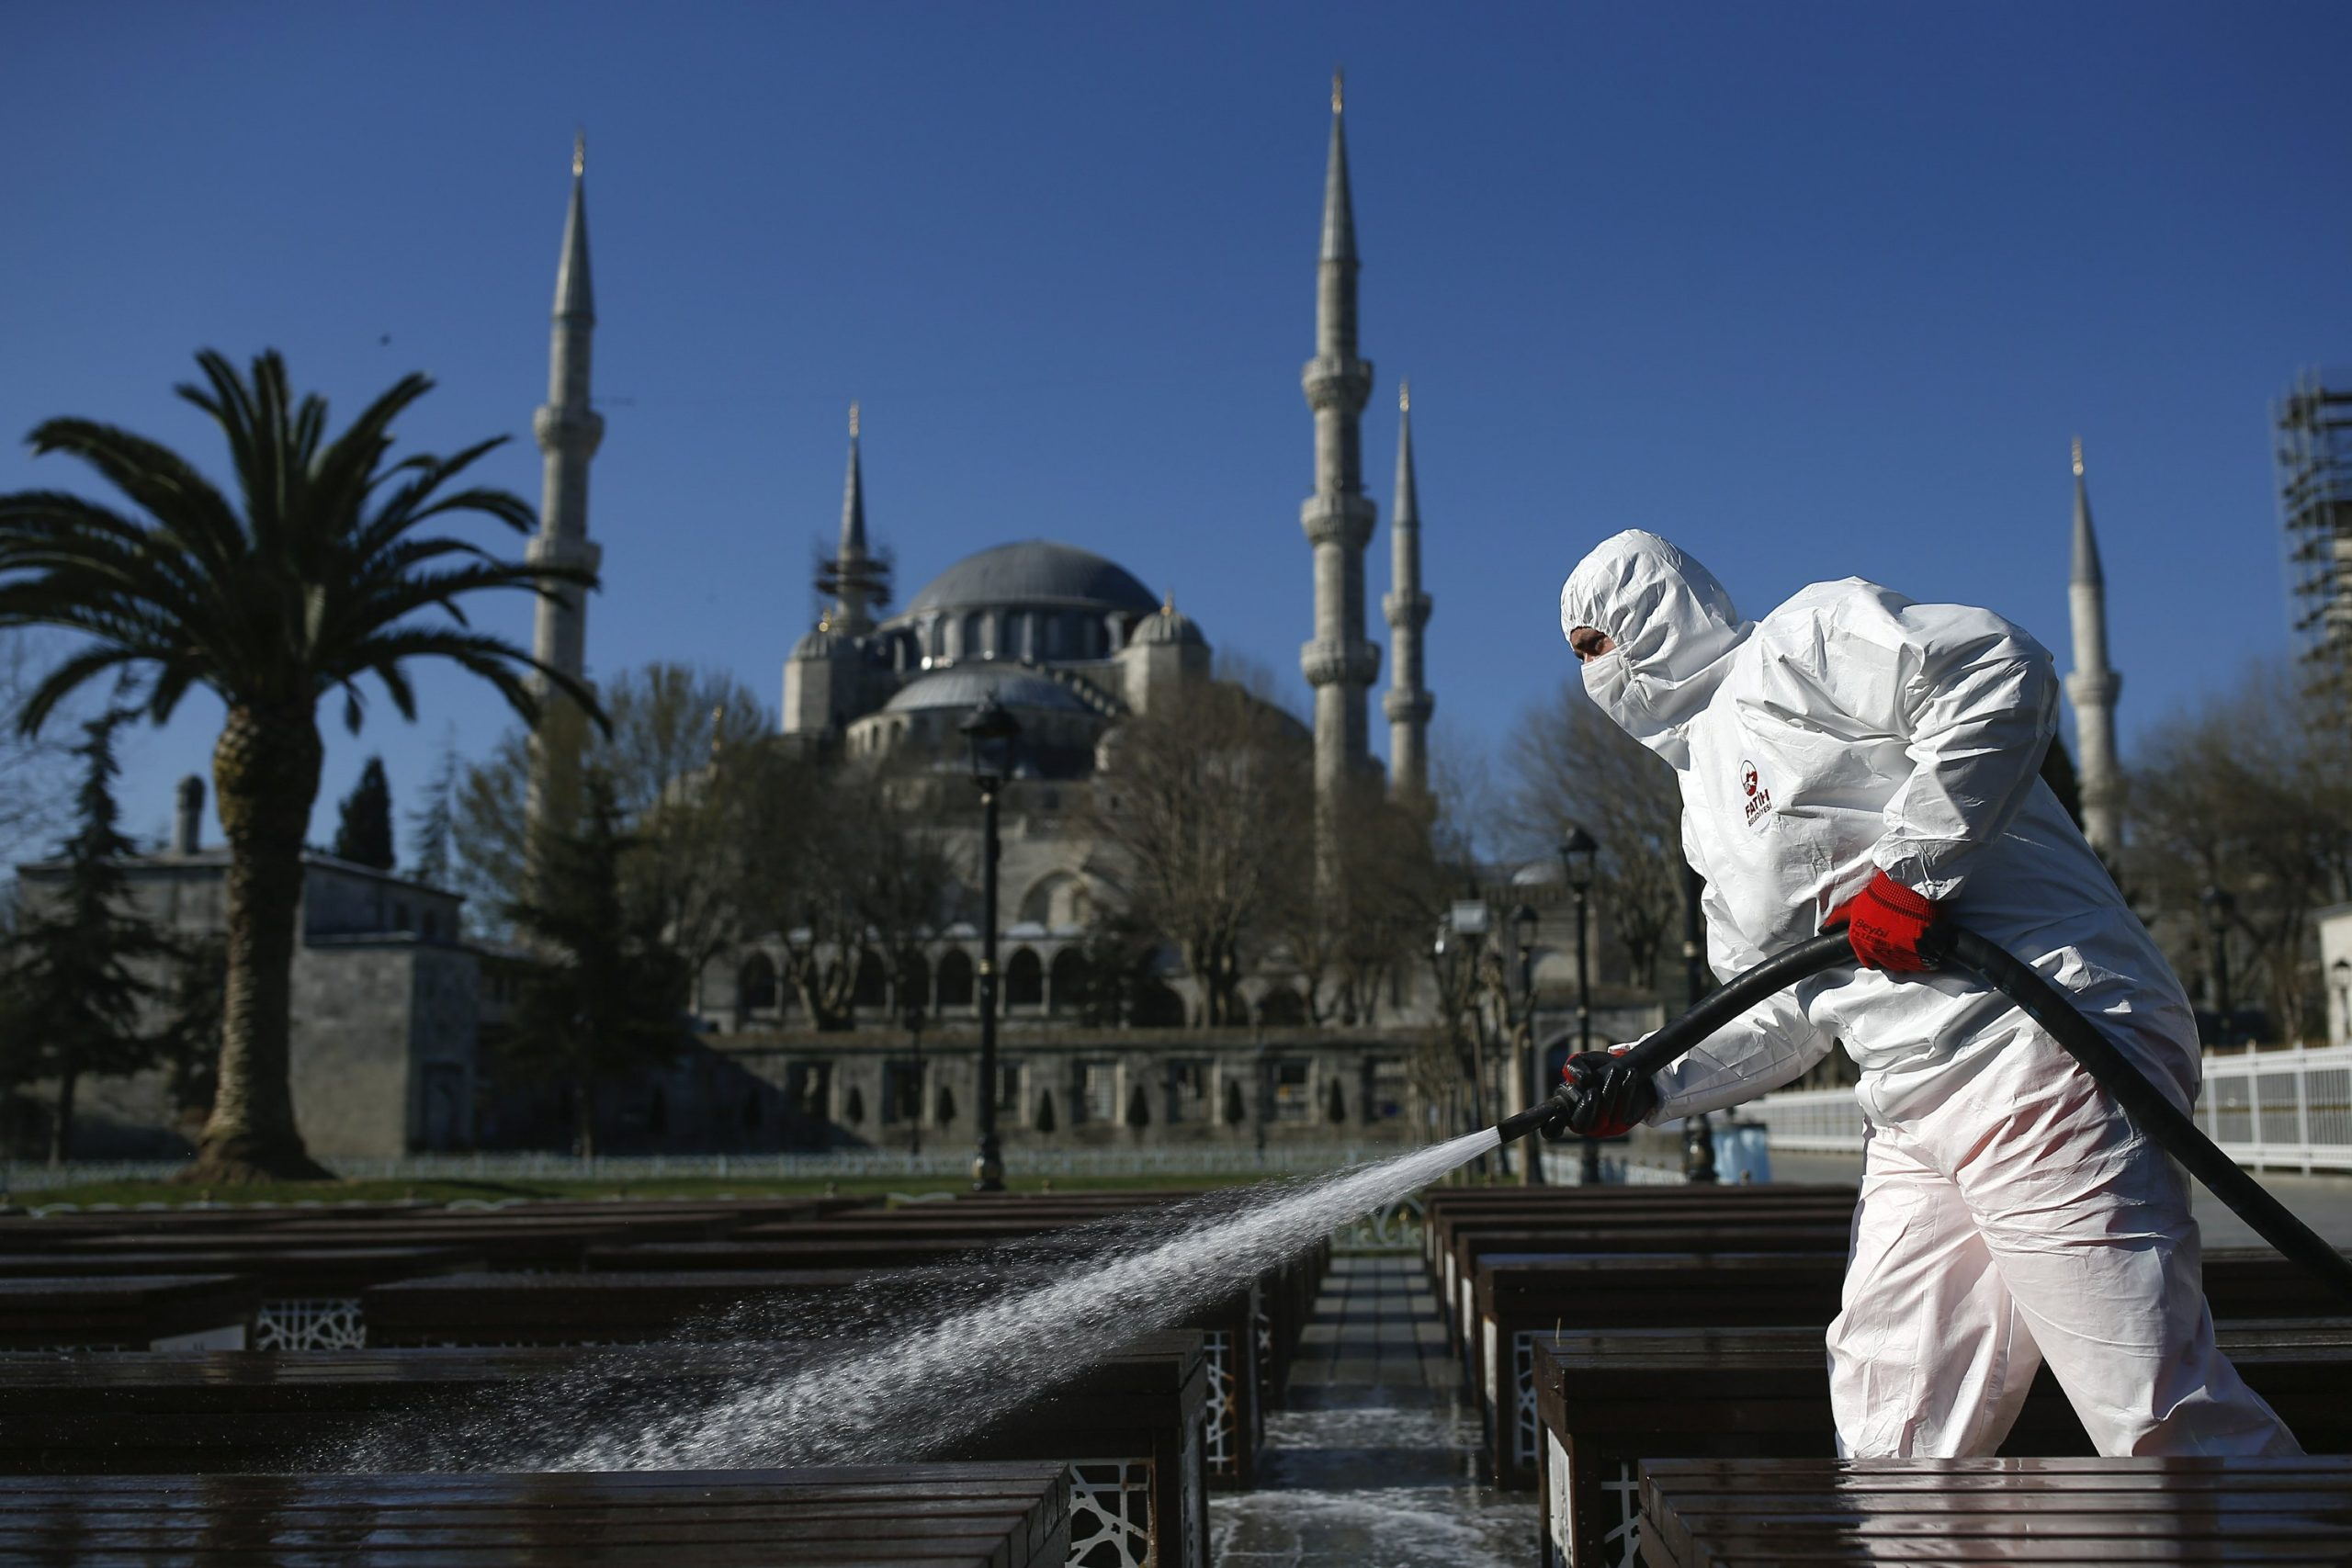 The new virus numbers in Turkey confirm the experts' worst fears